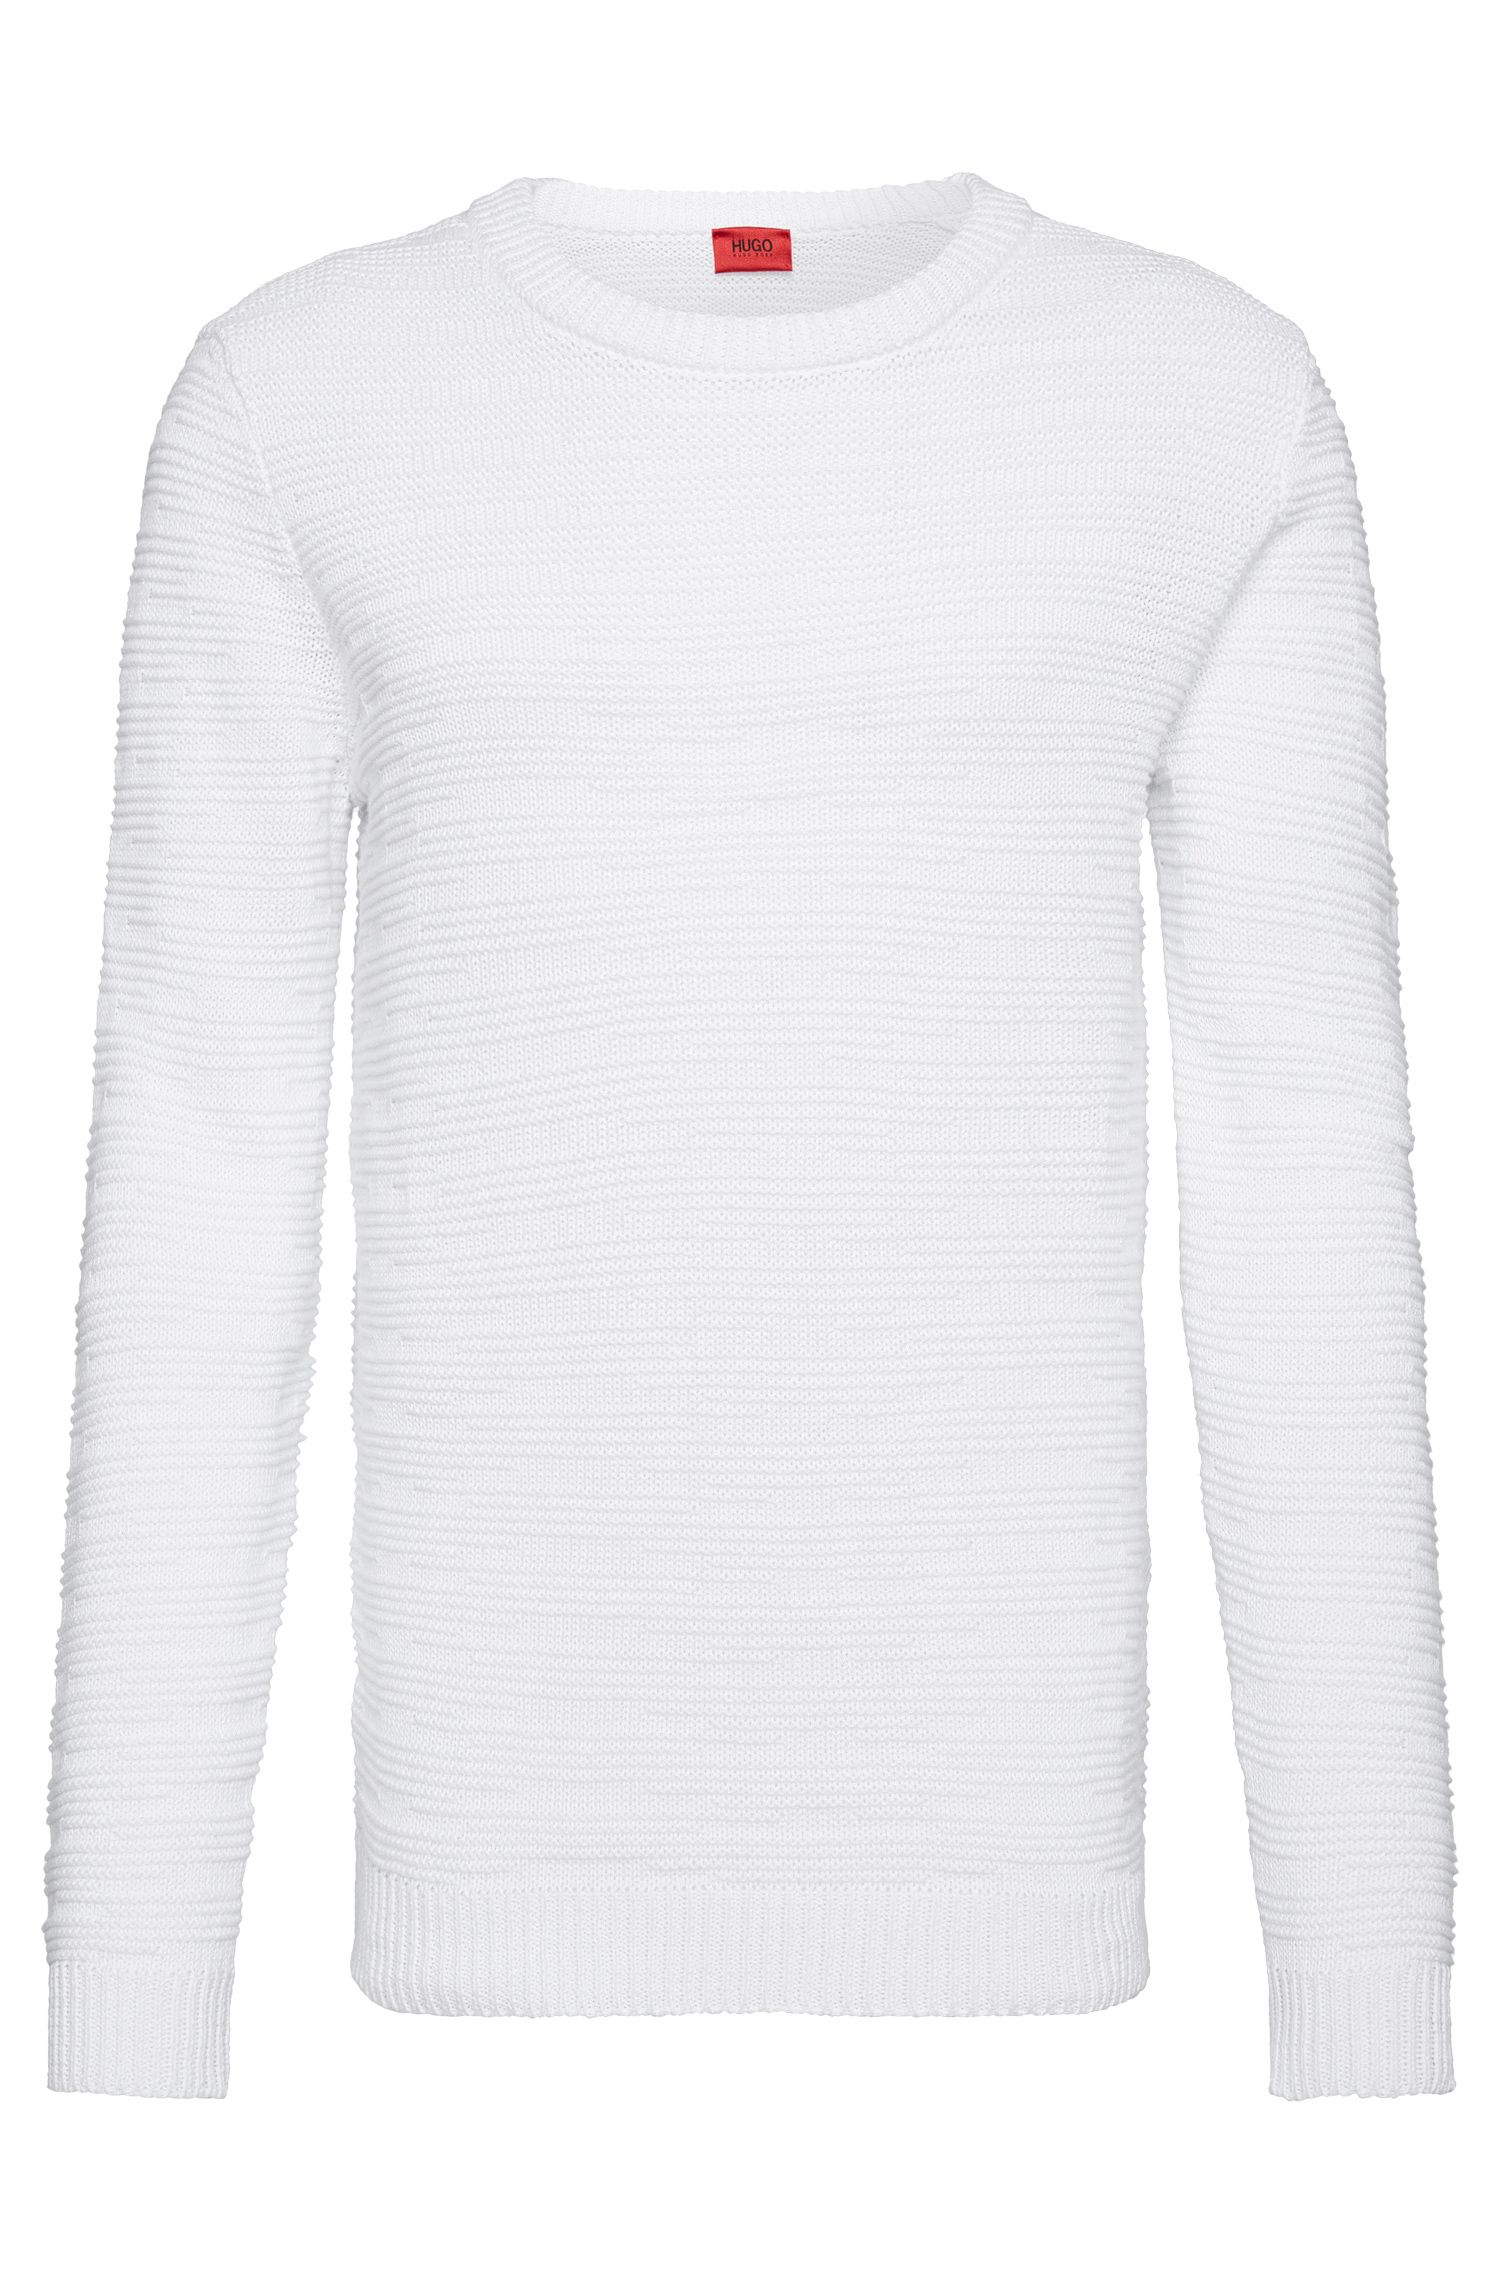 Oversized-fit sweater in linen blend with cotton: 'Soleron'